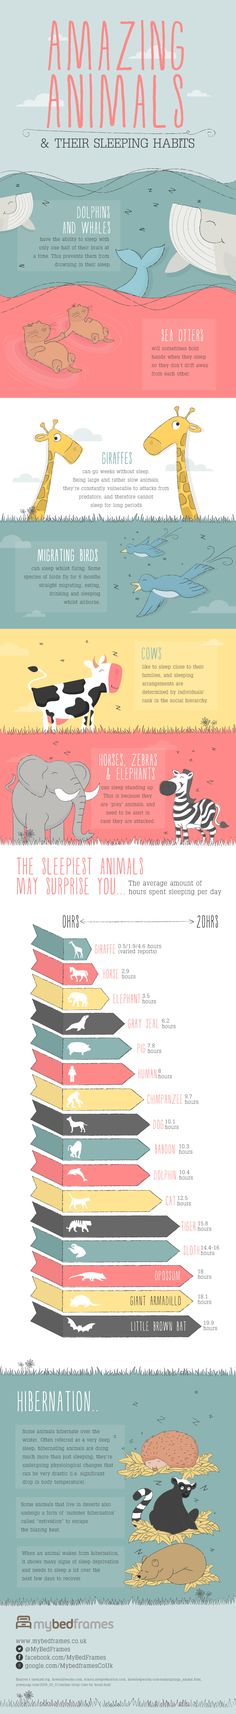 Surprising Facts About How Animals Sleep (Infographic) #Infographic #Animals #Sleep